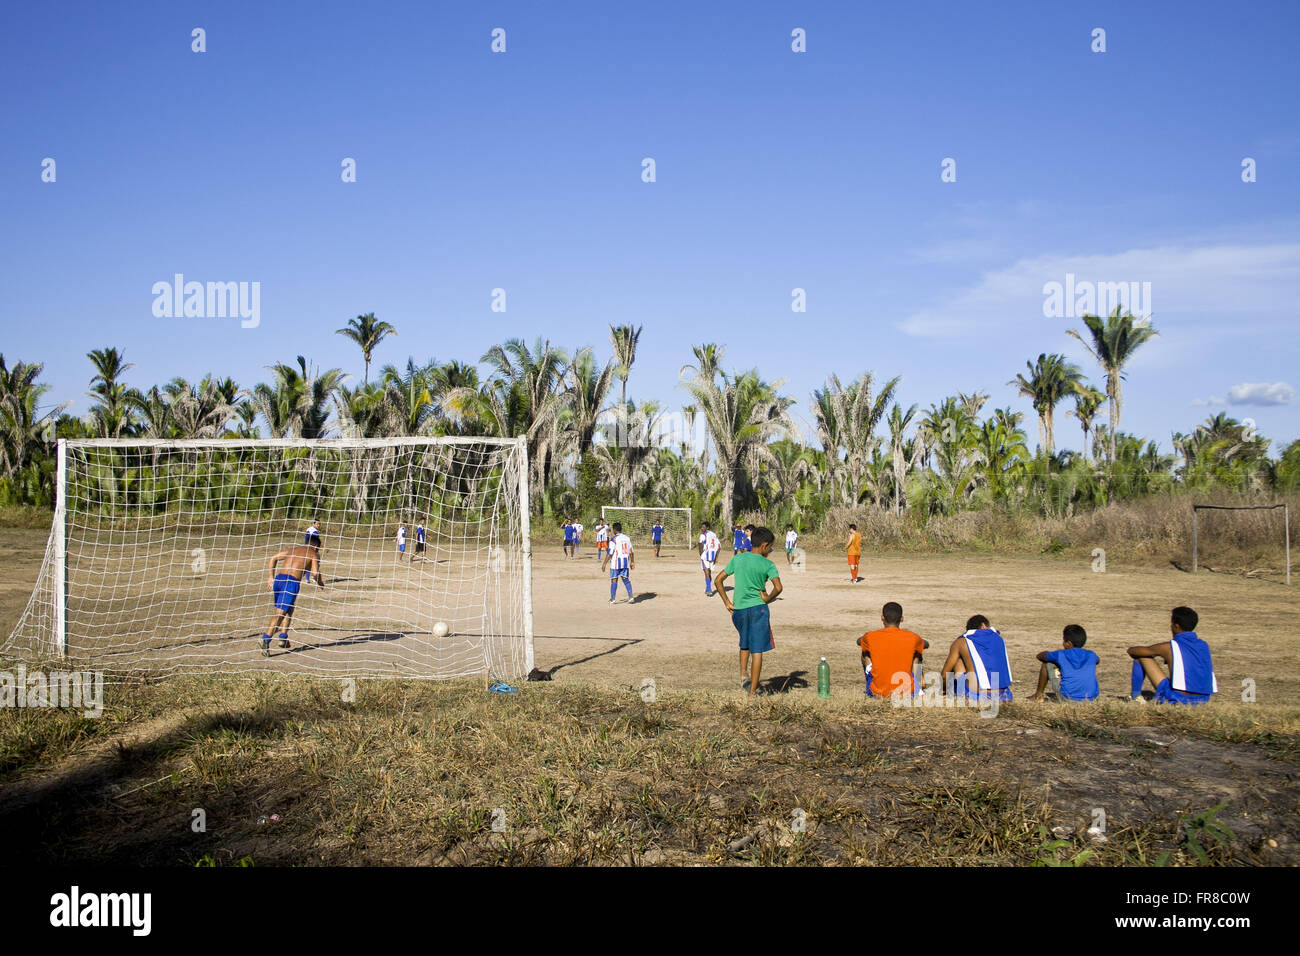 Goalkeeper preparing to kick the ball during a football game in the countryside - Stock Image